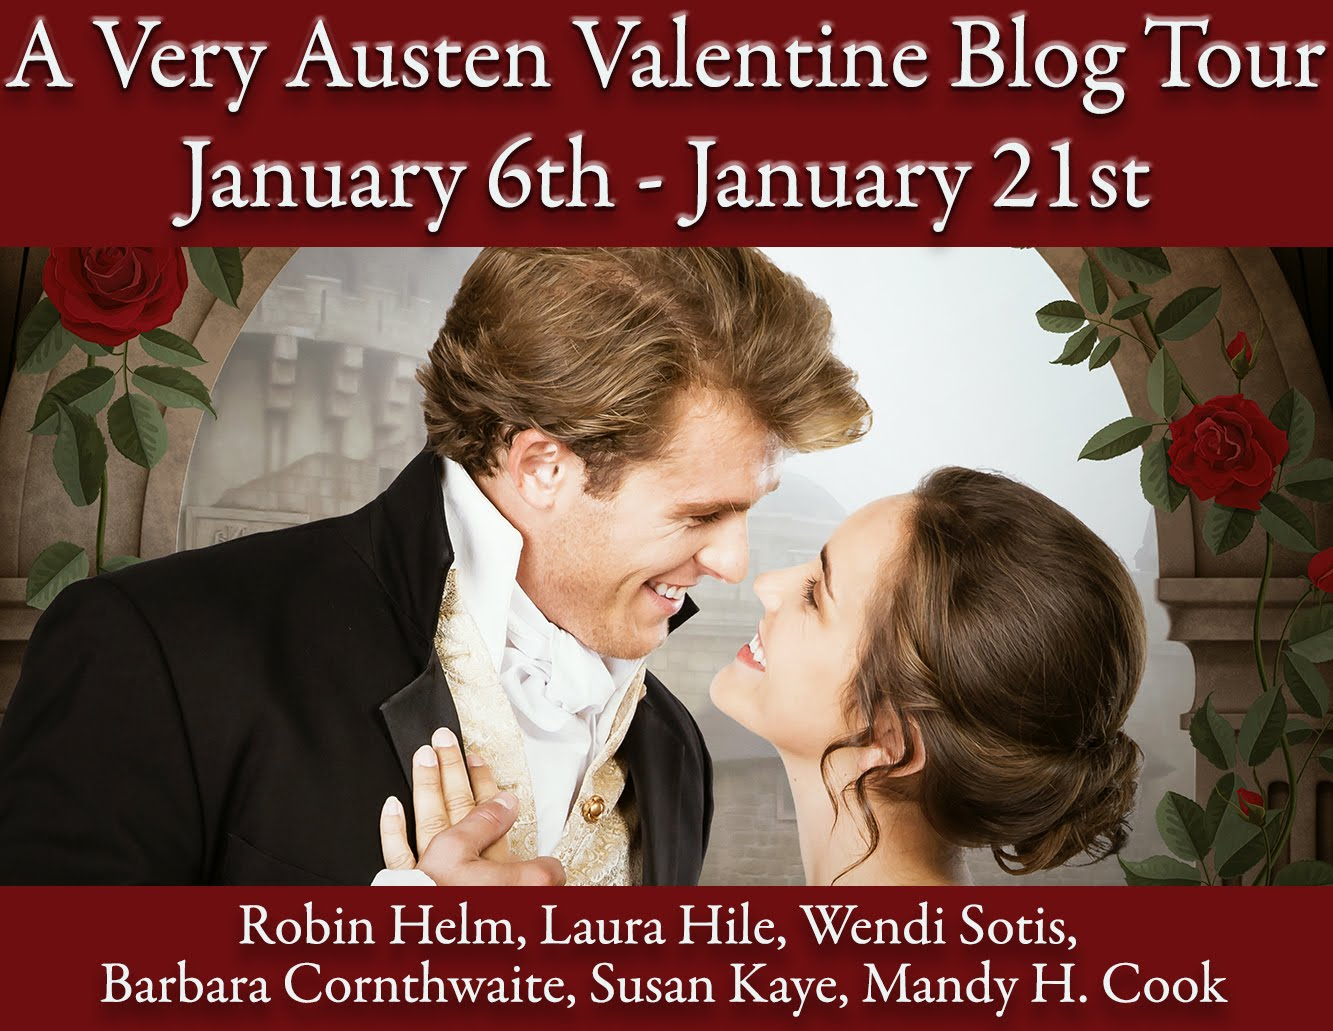 A Very Austen Valentine Blog Tour